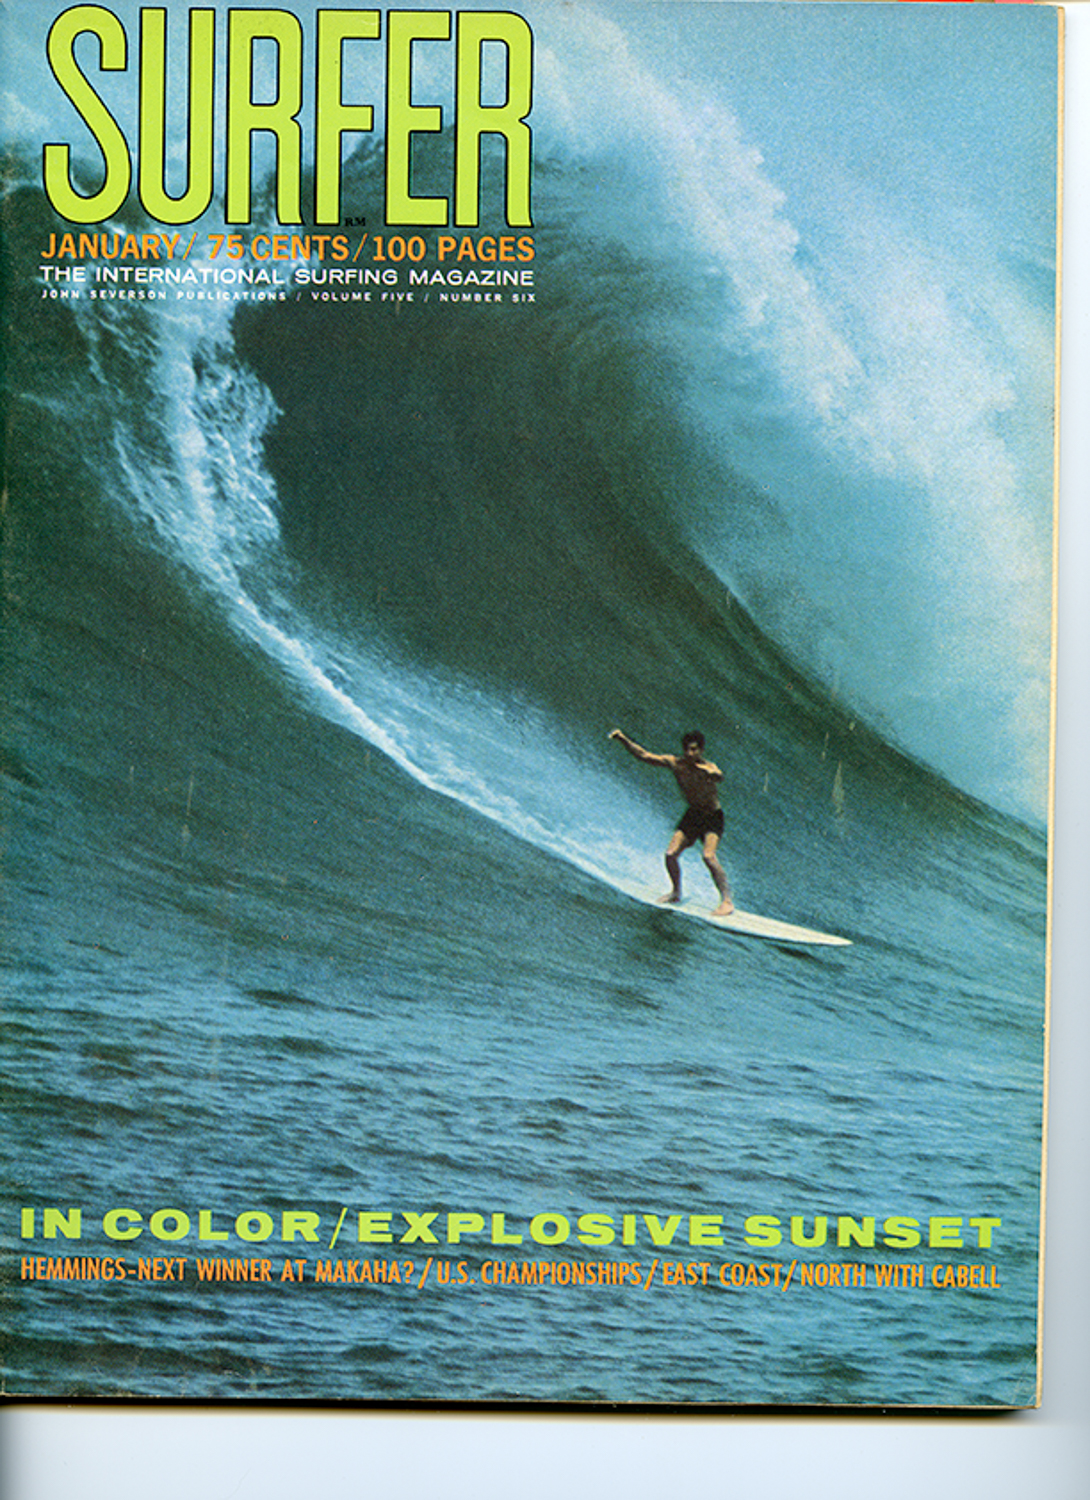 SURFER MAG 1964 JAN VOL5 - STEVE BIGLER